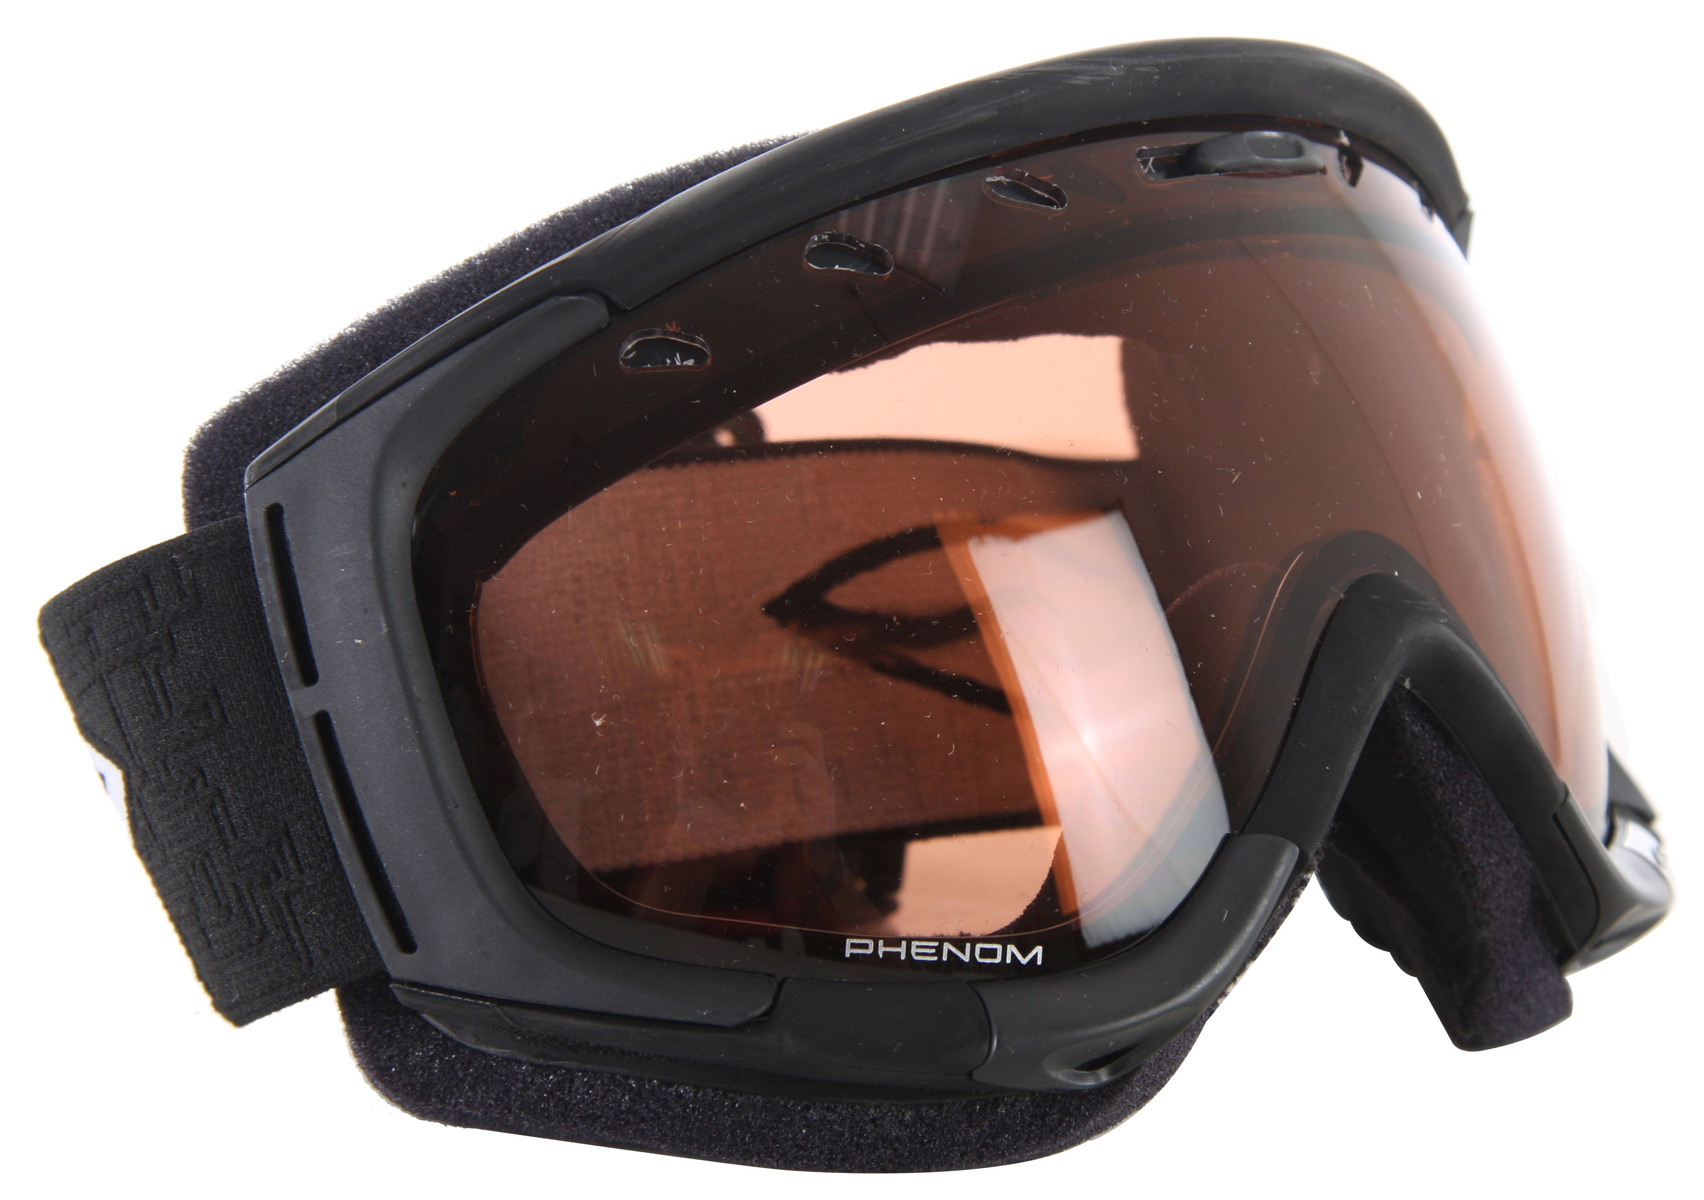 Snowboard Uncompromising in its design, the Phenom packs superior technology and maximum customization into our best fitting goggle ever. RC36 Lens.Key Features of the Smith Phenom Snowboard Goggles: Medium Fit Spherical, Carbonic X Lens with TLT Optics Painted Vaporator Lend Technology with Portex Filter Painted Regular adjustable Lens Ventilation Articulating outrigger positioning system Interchangeable Hop-up Kits Ul - $77.95